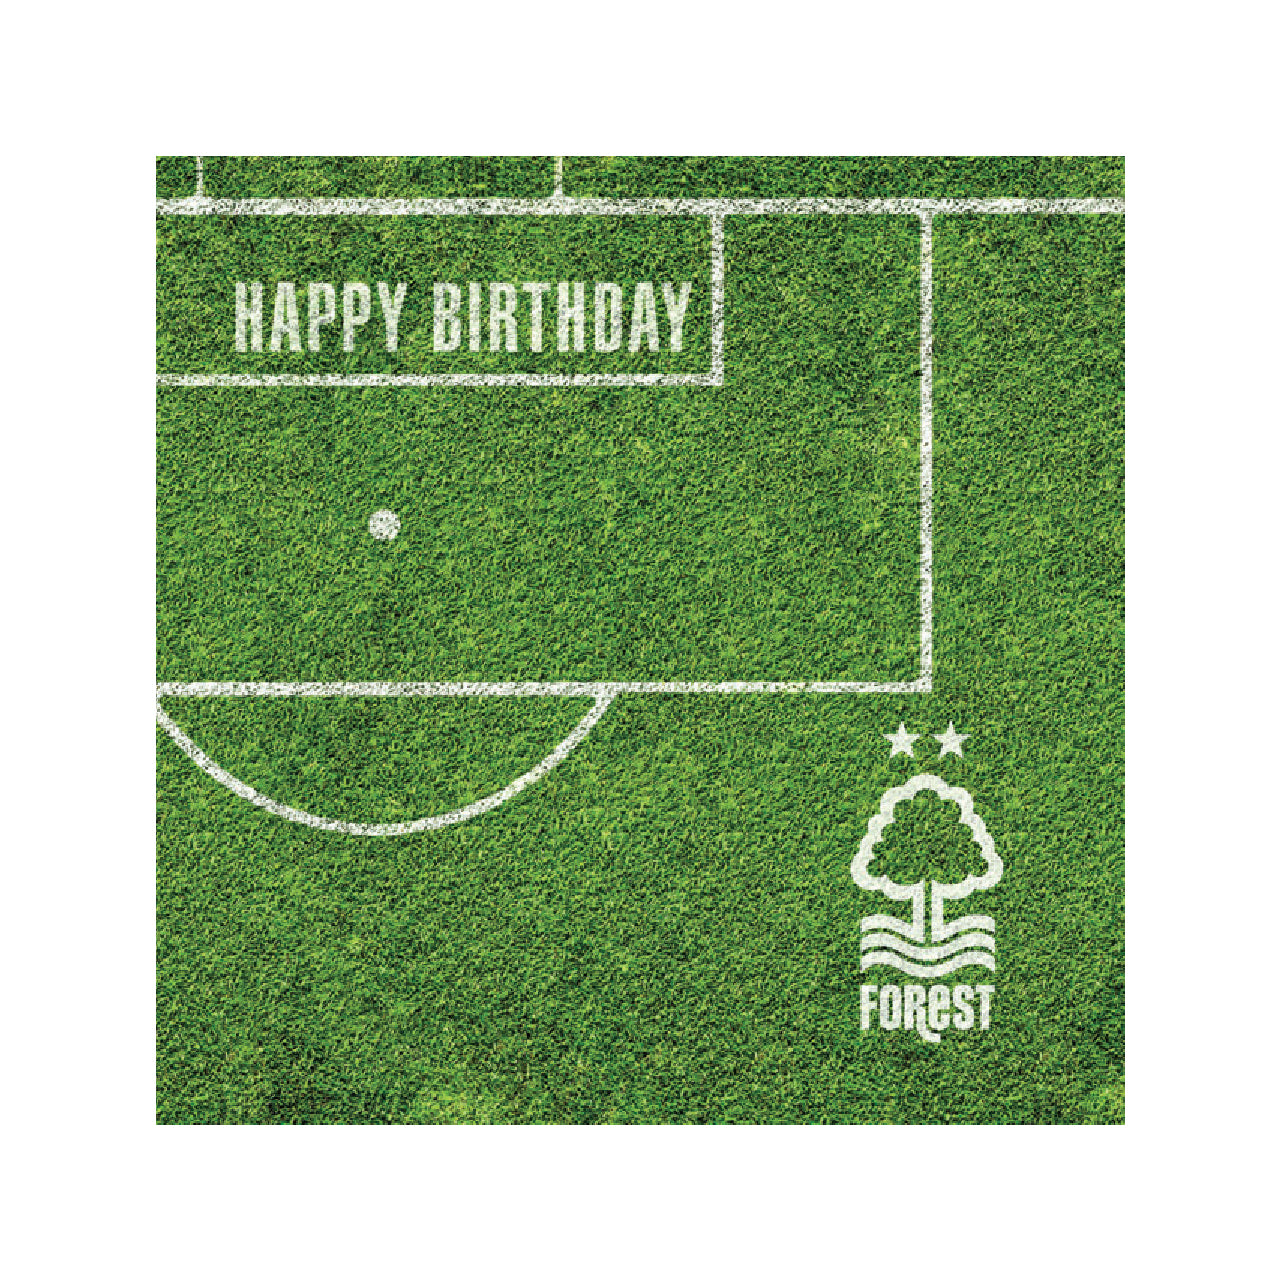 NFFC Happy Birthday Pitch Card